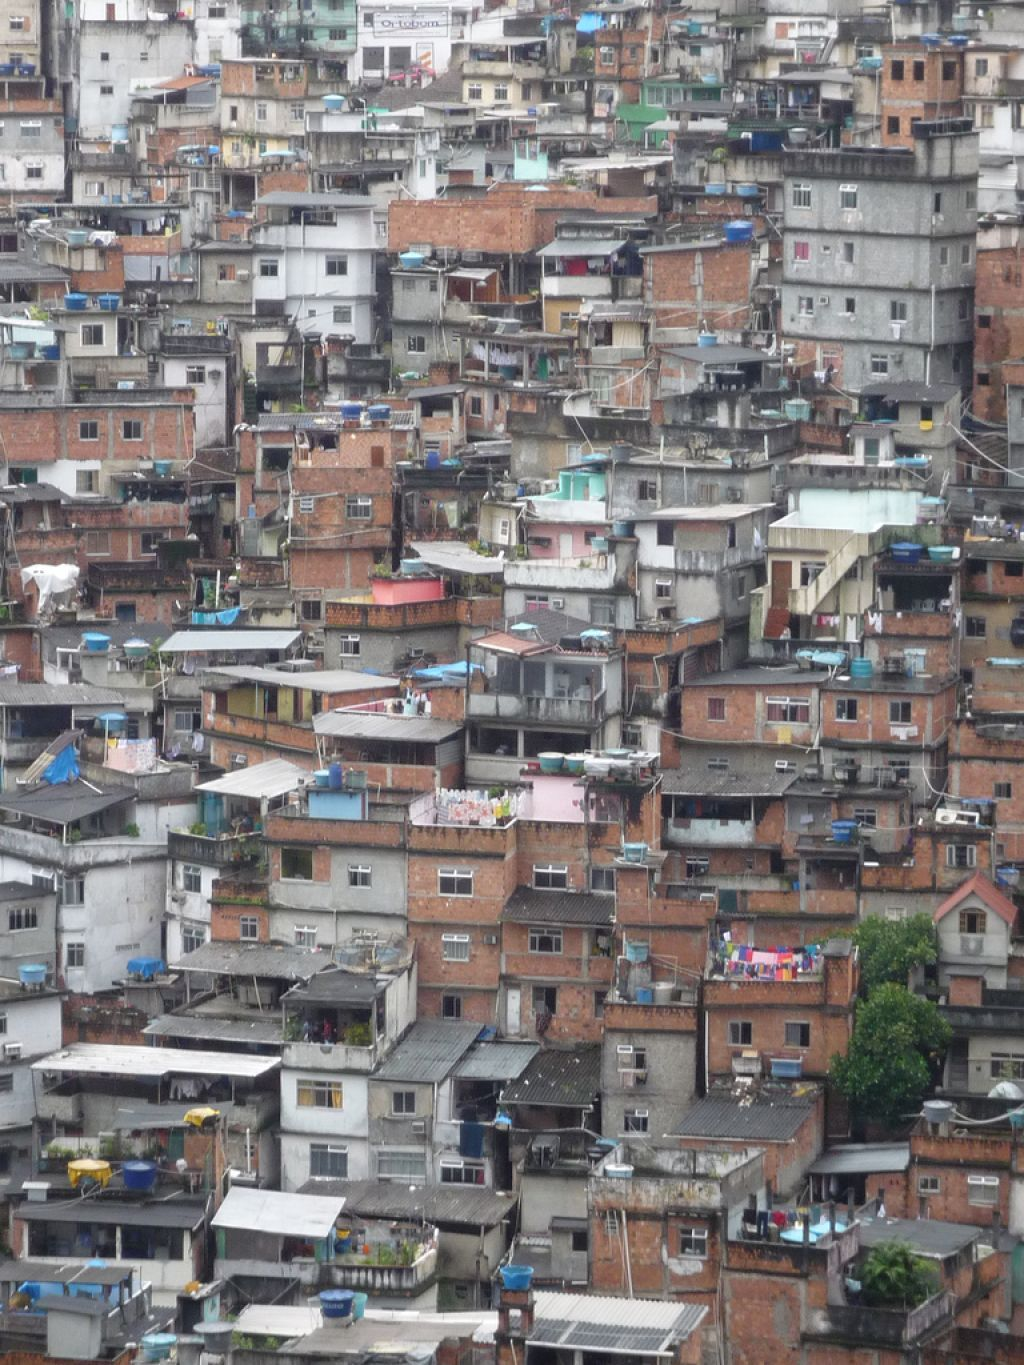 rocinha favela11 Rocinha   The Biggest Favela in Rio de Janeiro